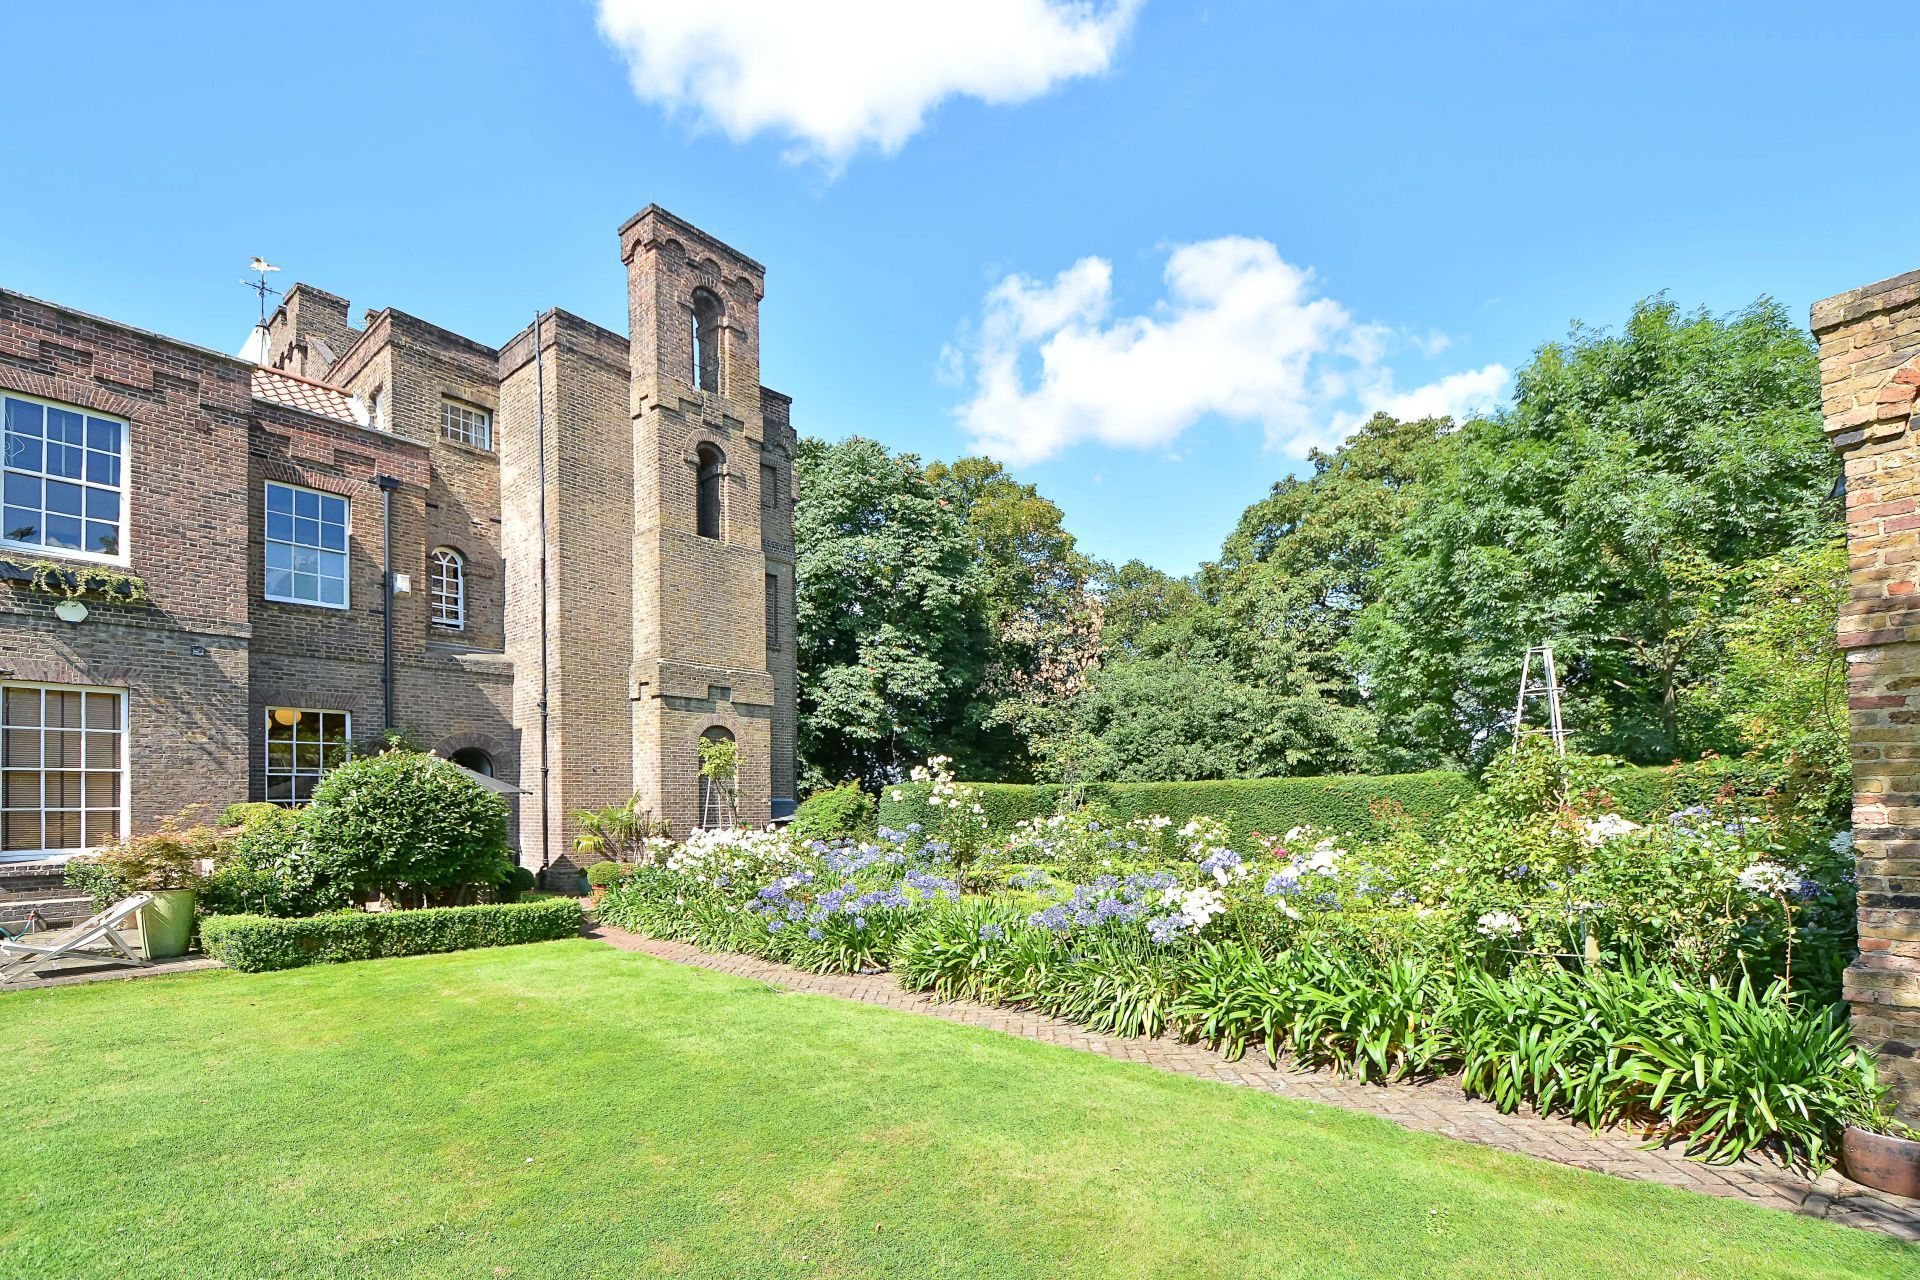 Eight bedroom main manor and a separate four bedroom gatehouse - This Luxury Four Bedroom House Is Part Of The Grade I Listed Vanbrugh Castle Benefits Include Two And A Half Acres Of Communal Gardens And A Stunning